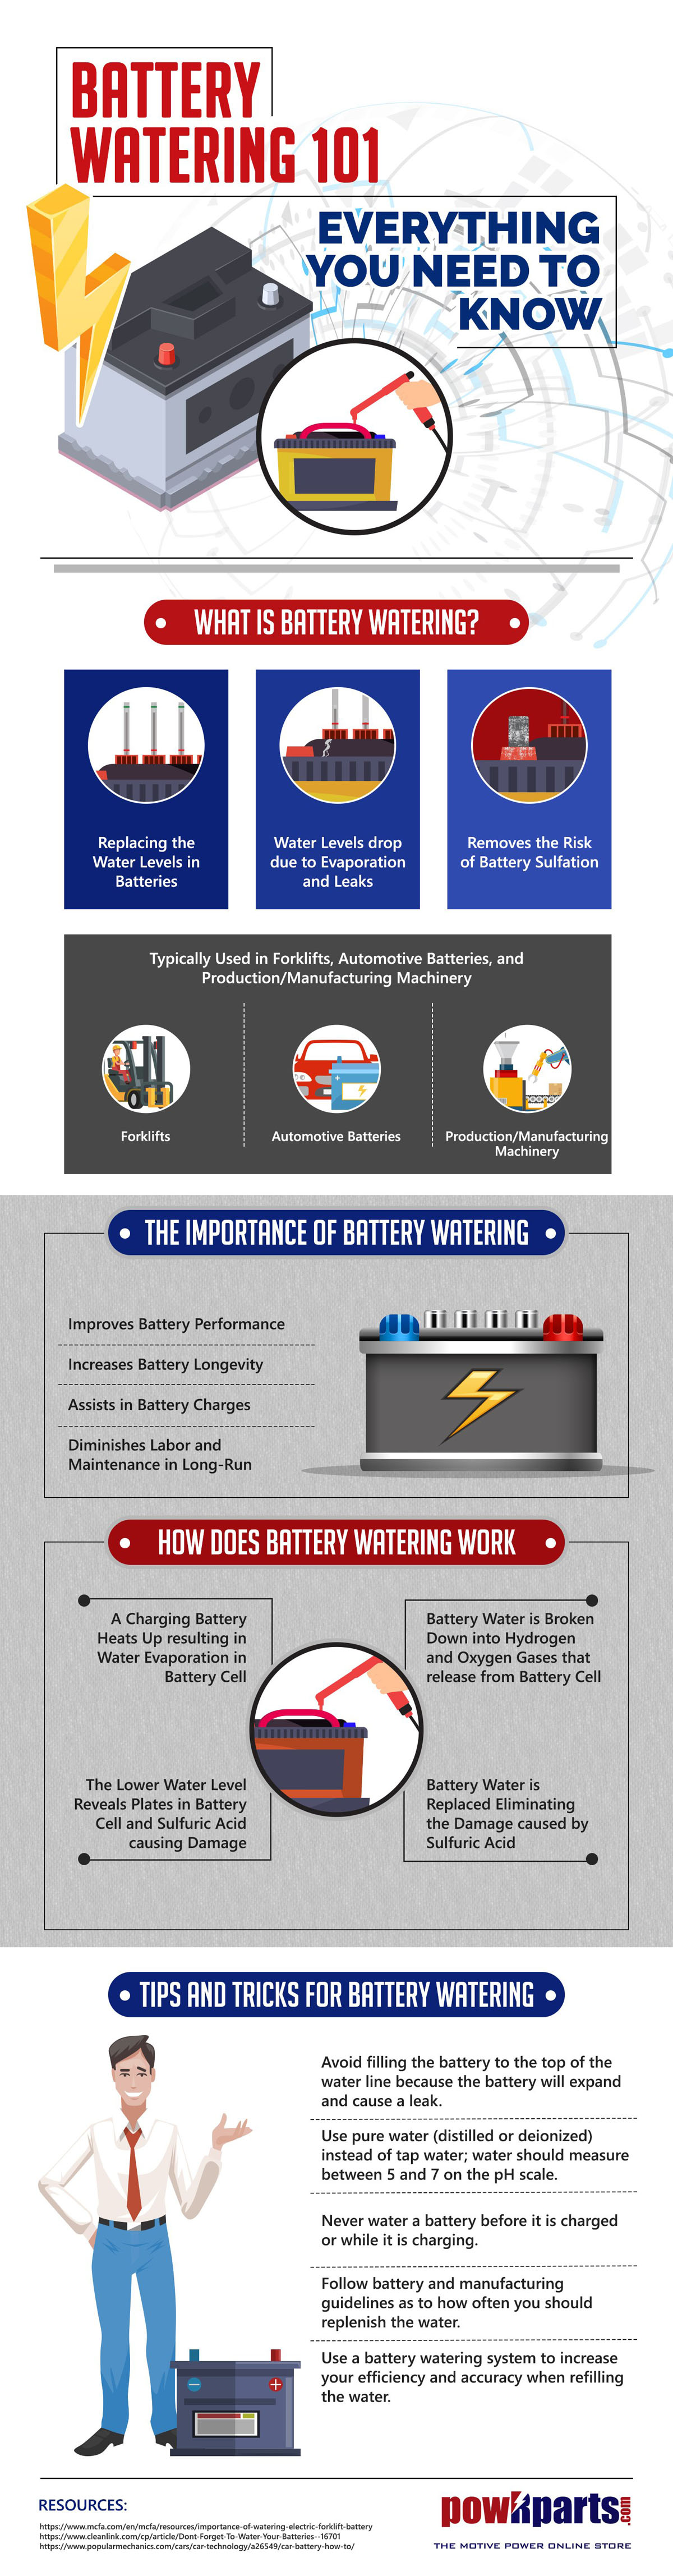 Battery Watering 101: Everything You Need to Know